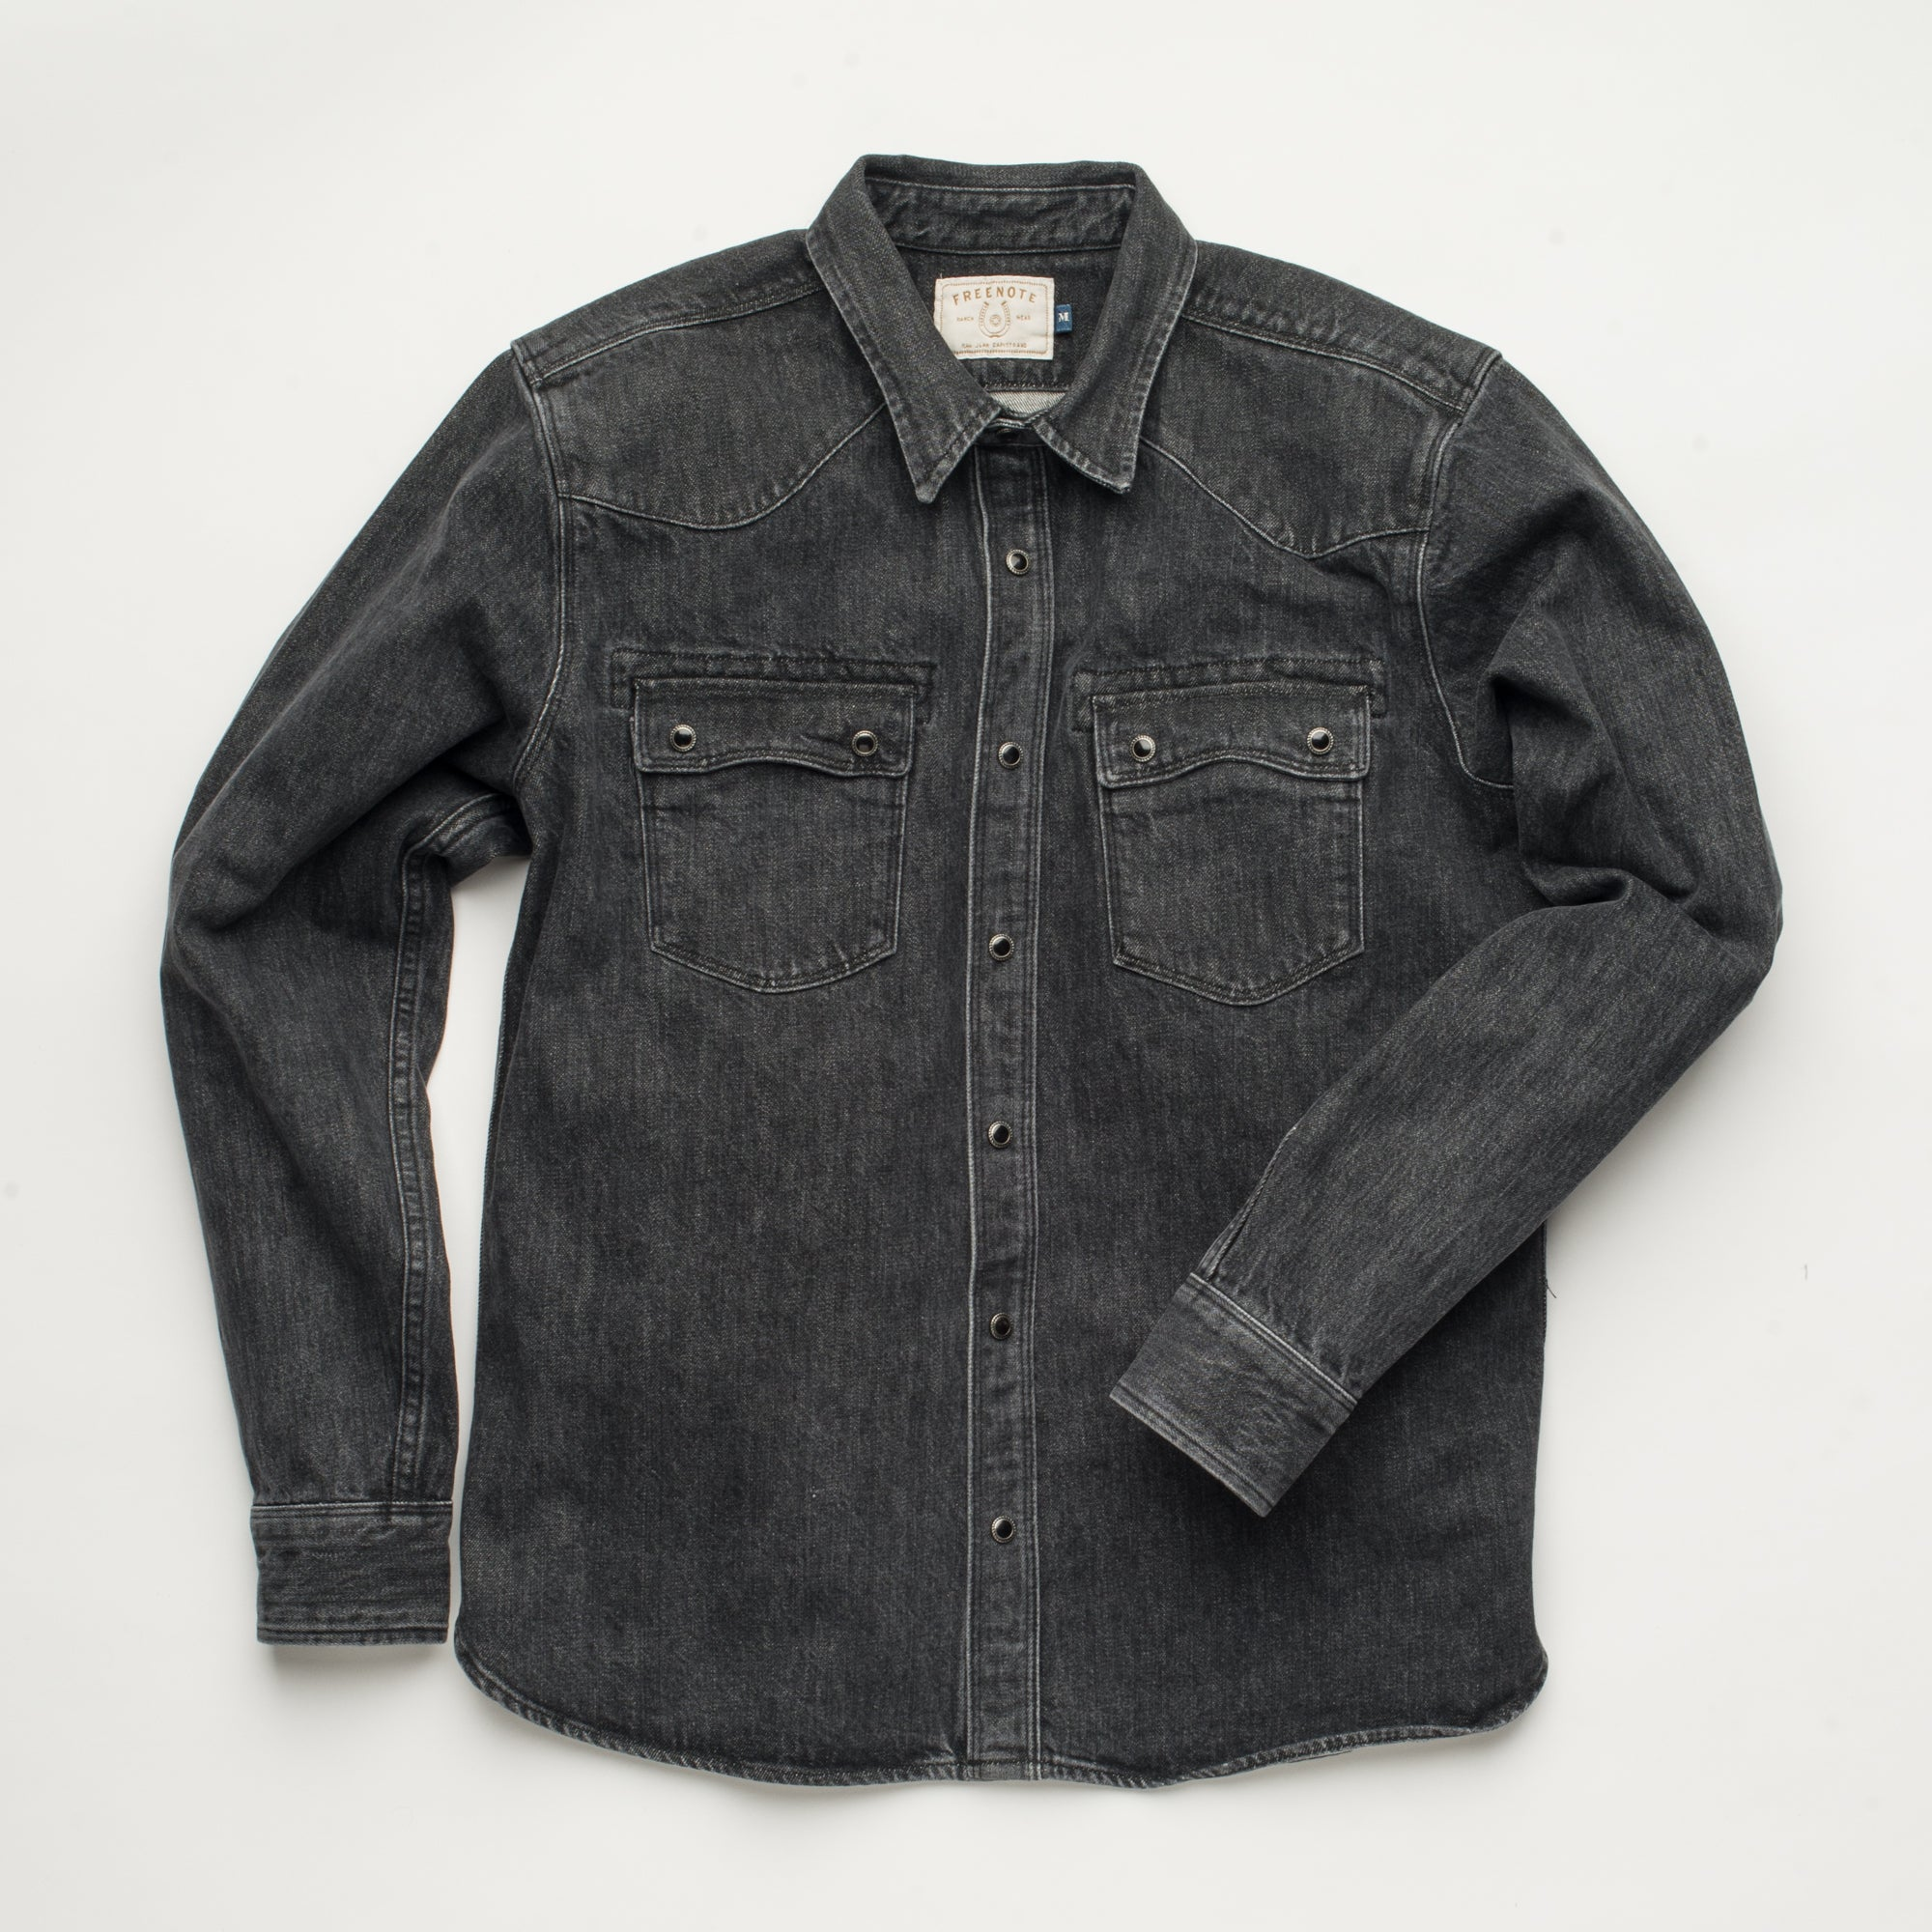 Modern Western <span> 13 ounce Cone Black denim </span>